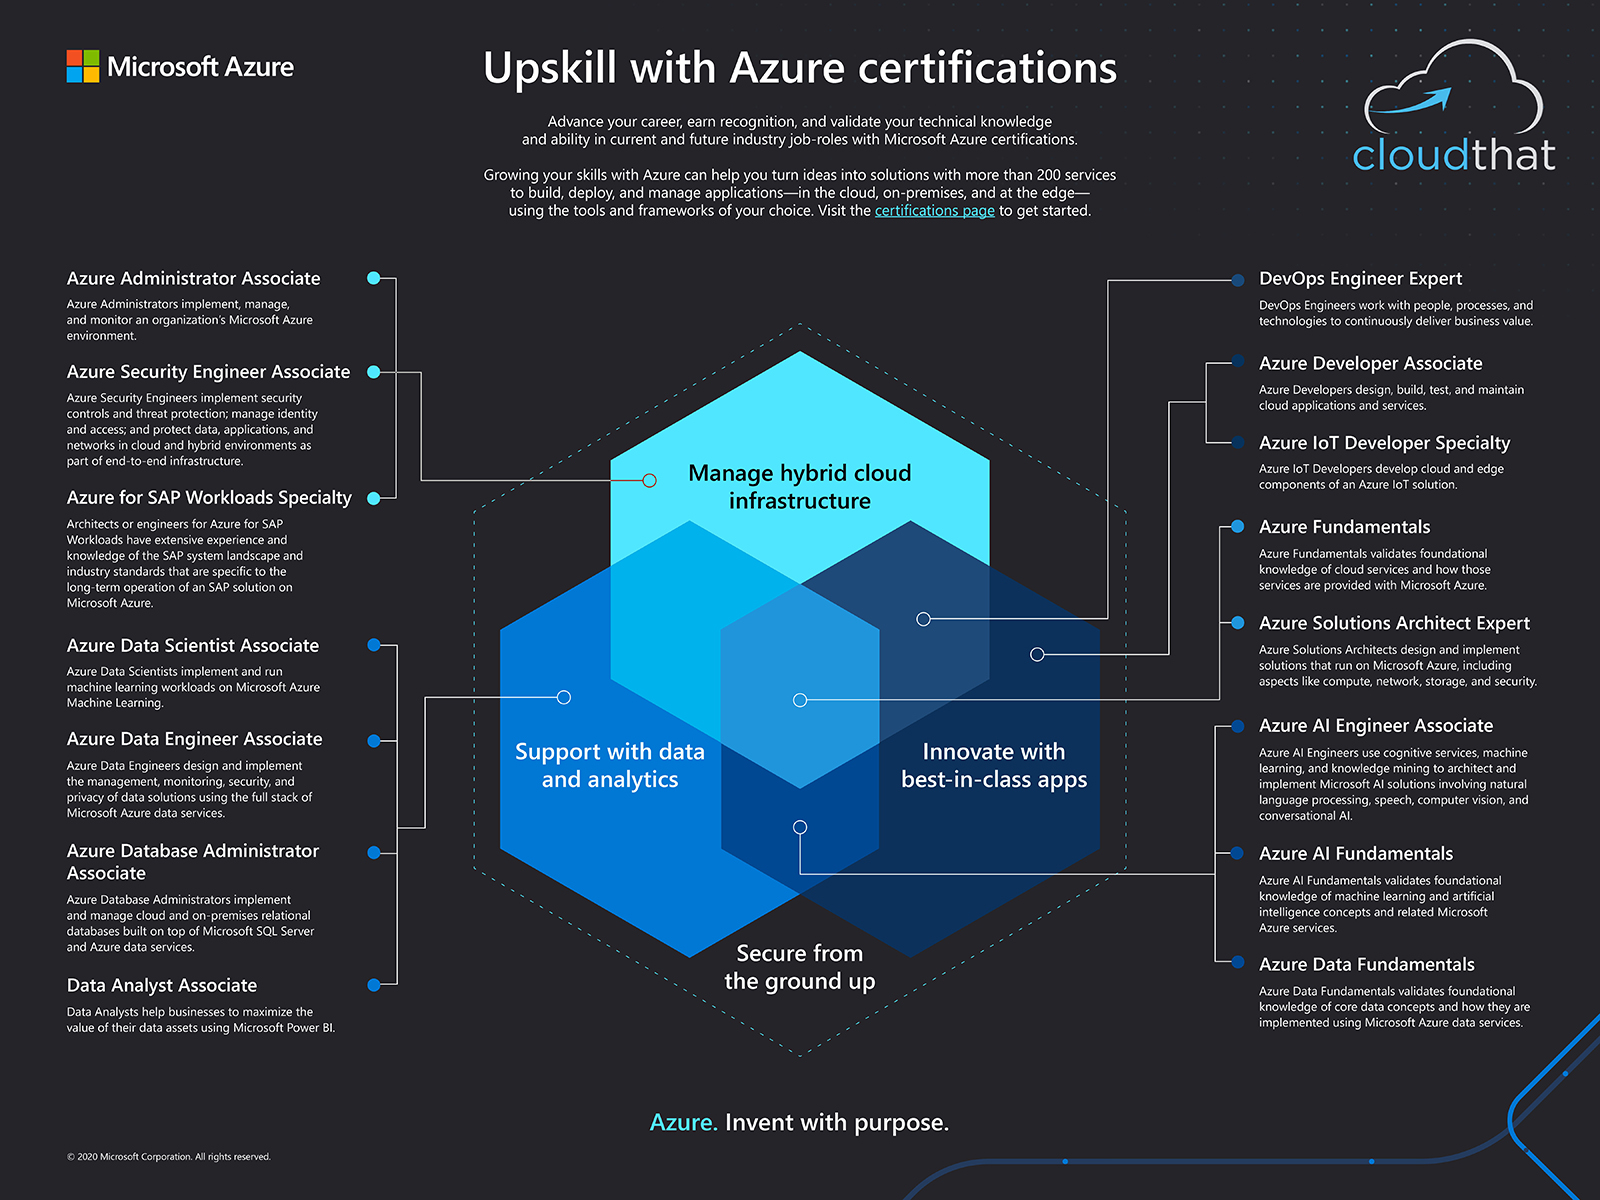 Microsoft Azure Certification Guide: How to Identify the Right Azure Course for You and Your Team?